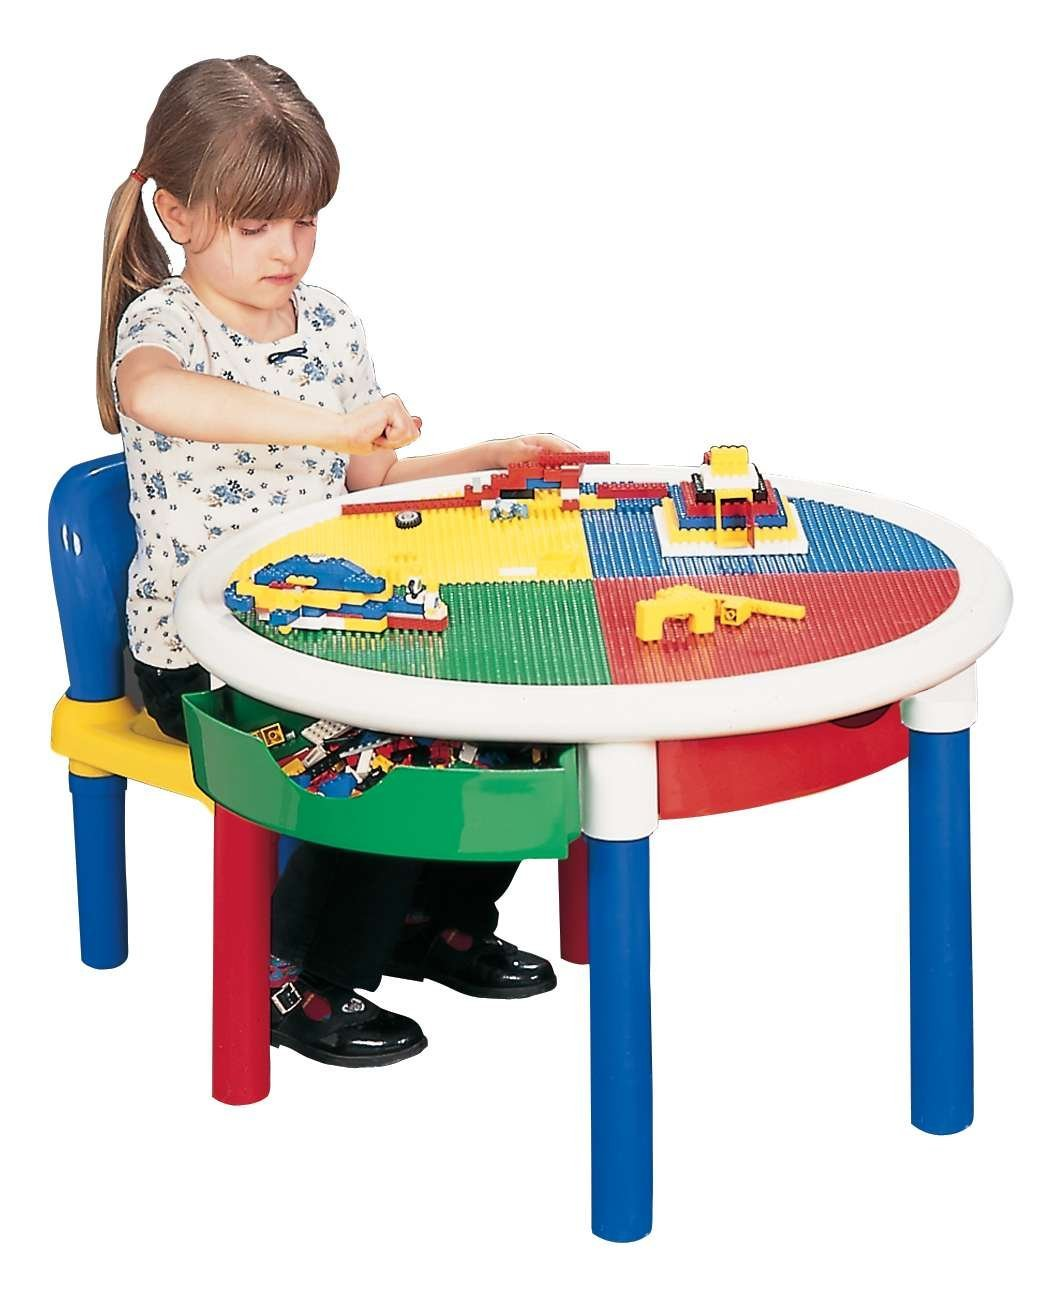 Sentinel Round 4 Drawer Activity Table No Chairs With Storage And Building Block Top